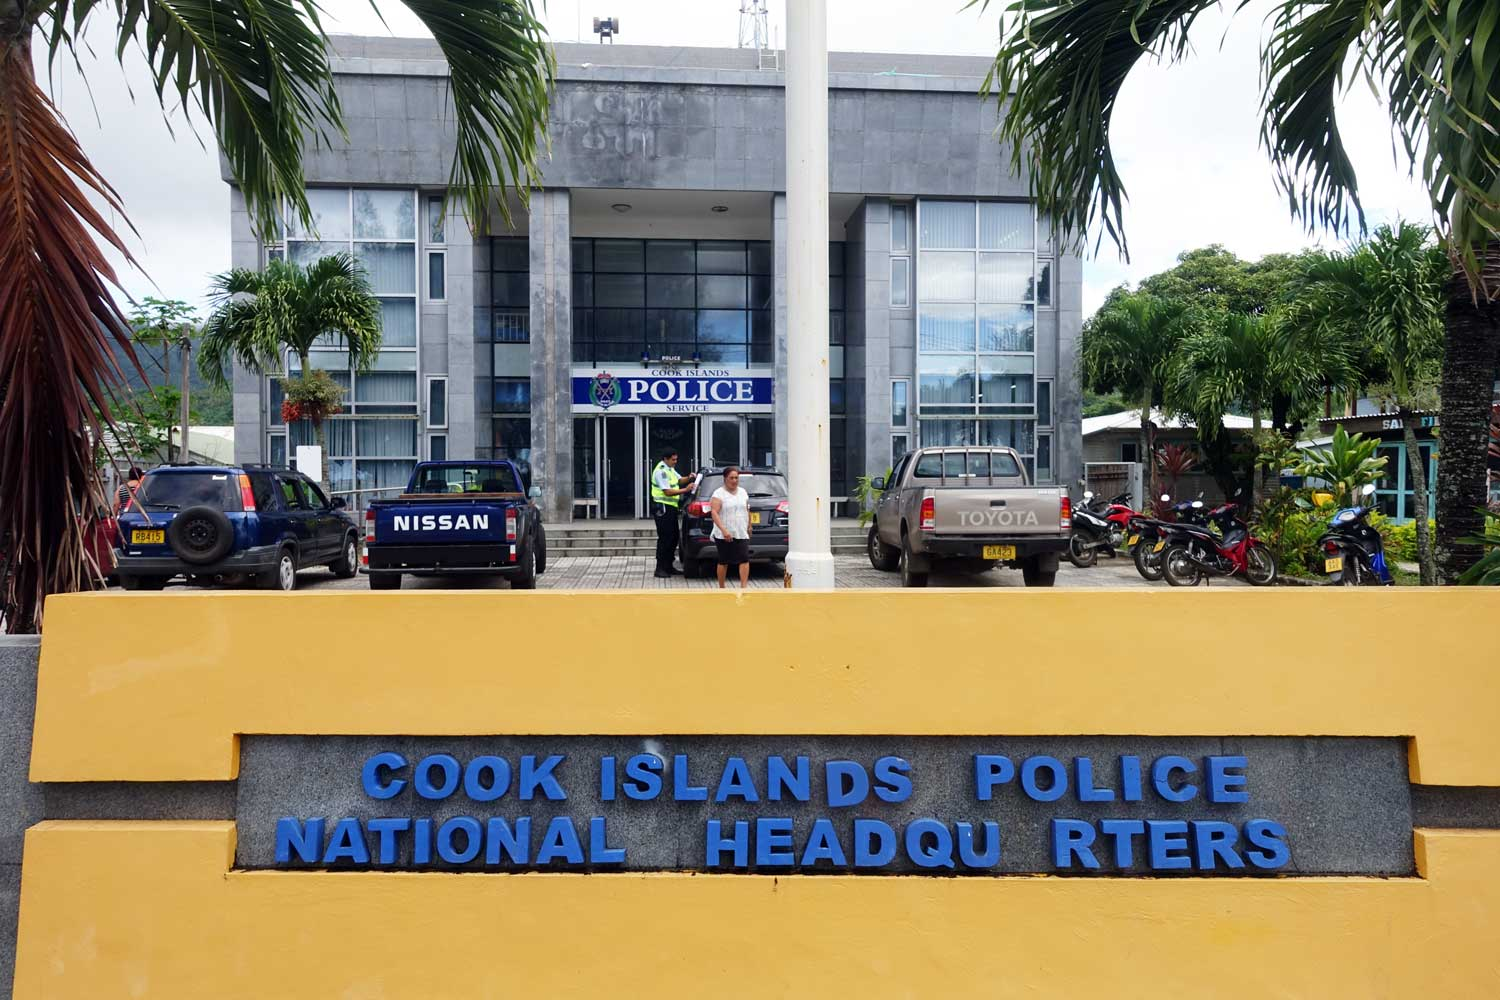 Cook Islands Drivers License Police Headquarters